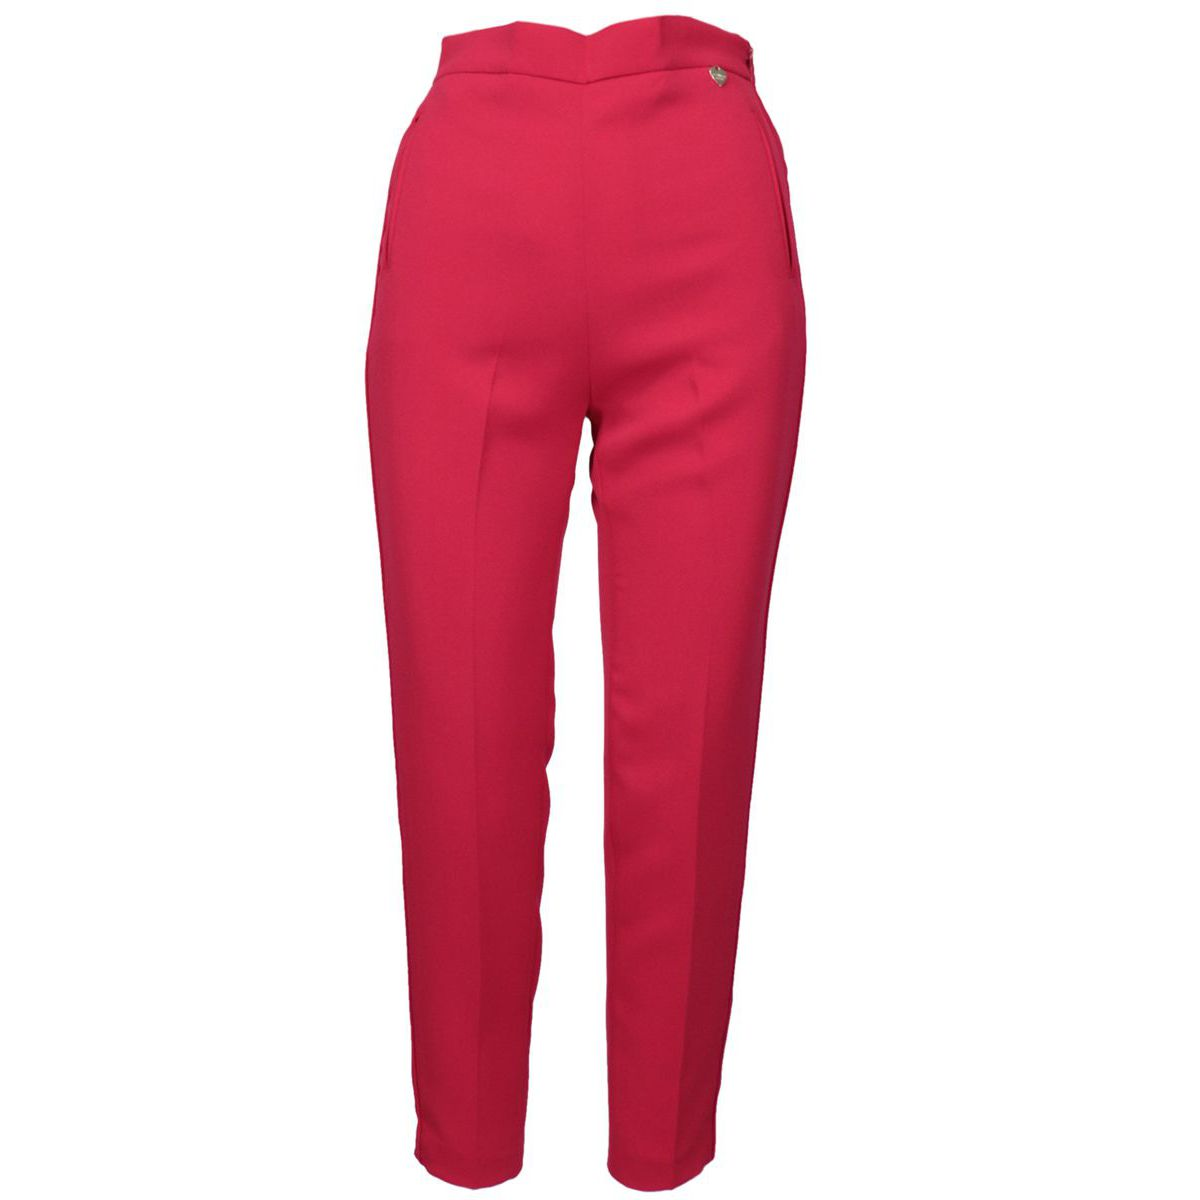 Georgette trousers with elastic waist and crease Amarena Twin-Set